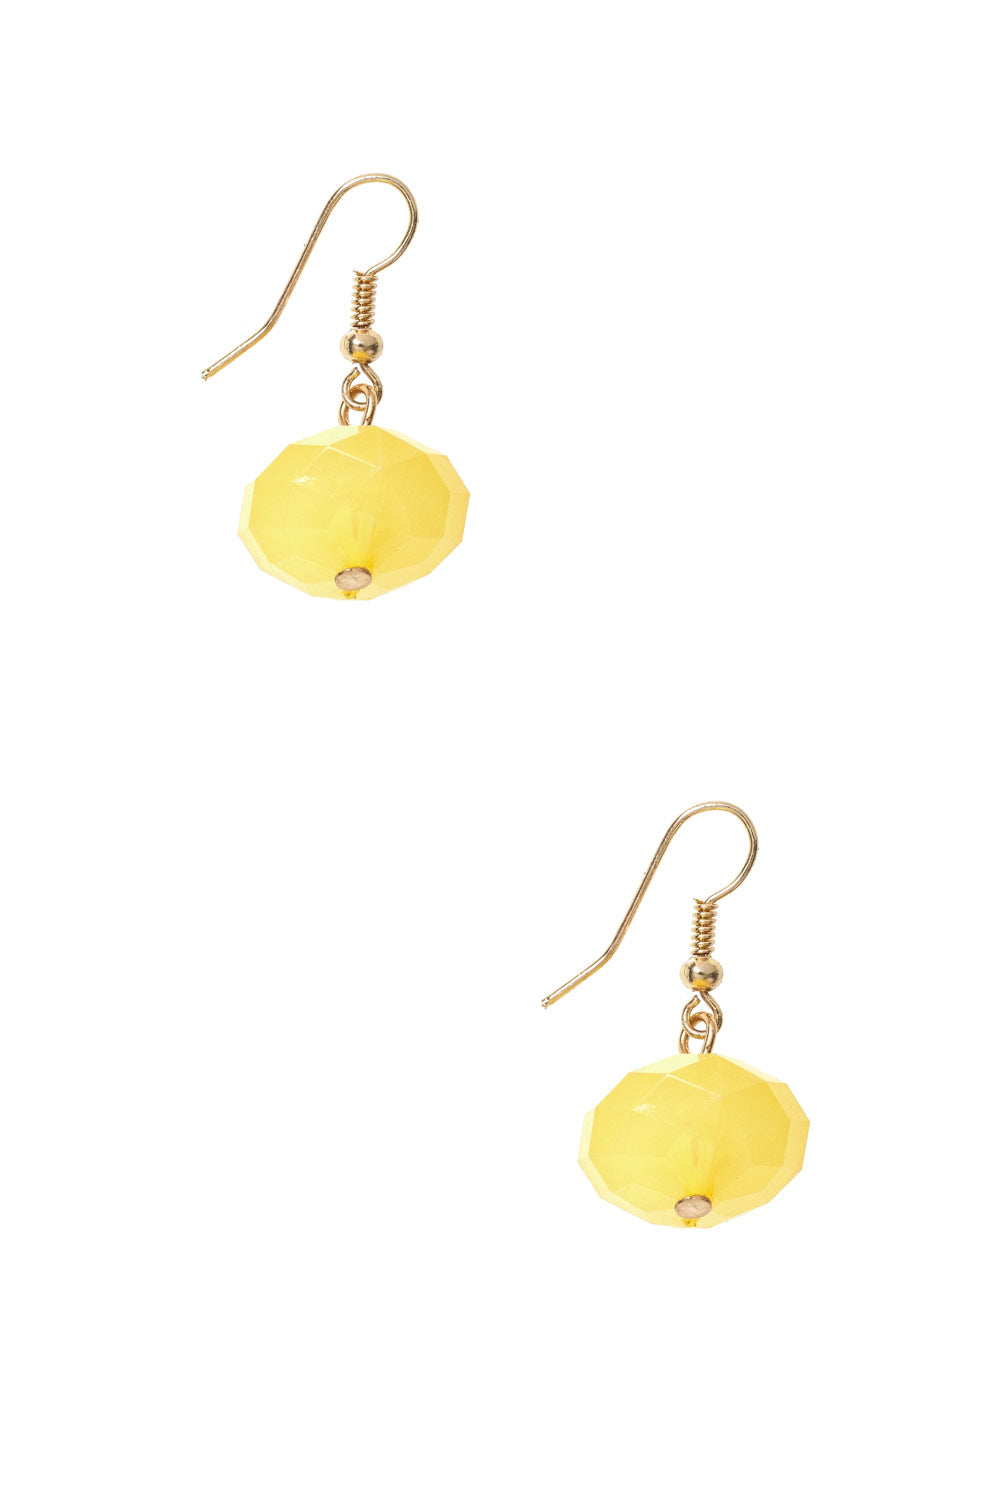 Type 1 Lemonade Earrings